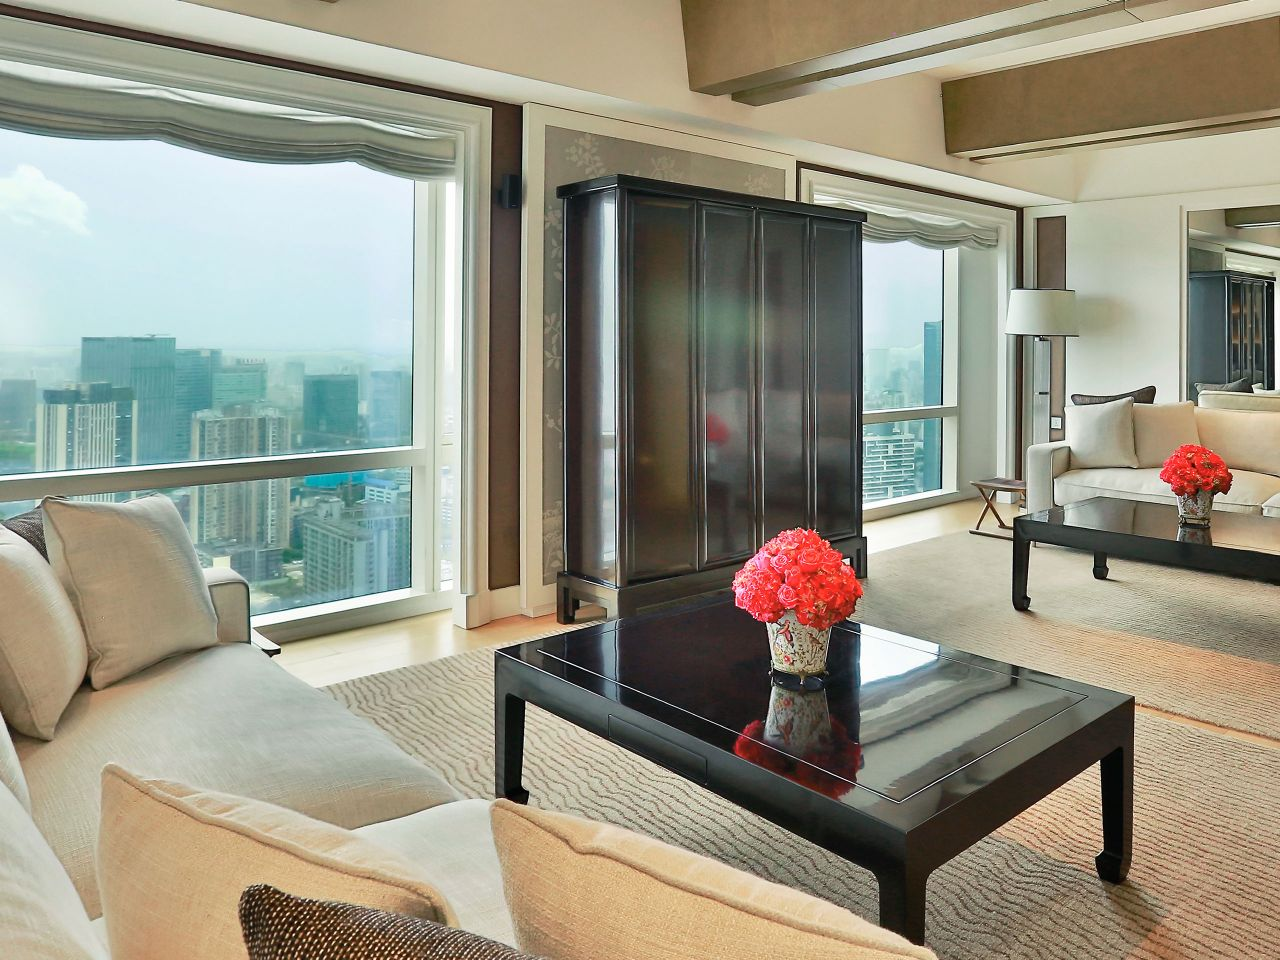 Grand Hyatt Chengdu Presidential Suite Drowing Room